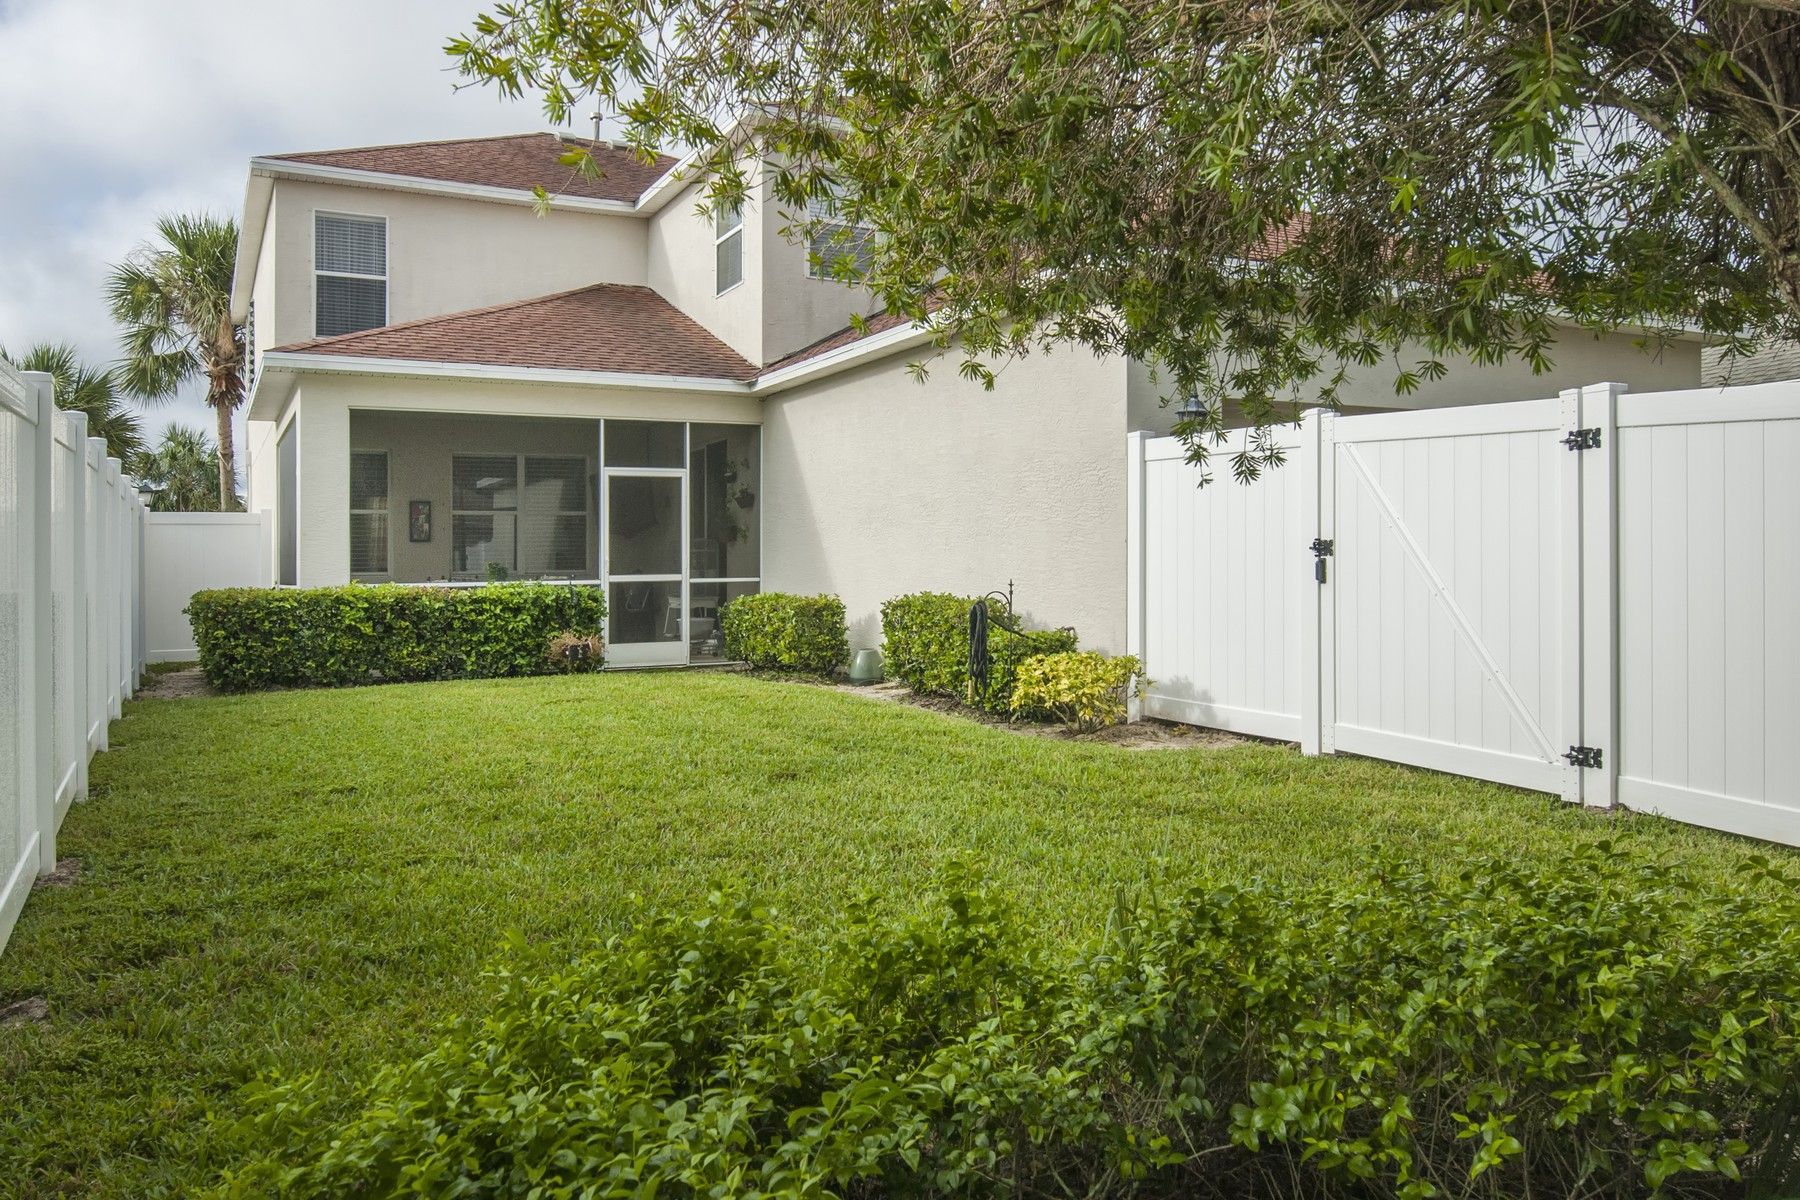 Additional photo for property listing at Beautifully Remodeled Home in Pointe West 7840 15th Street Vero Beach, Florida 32966 United States